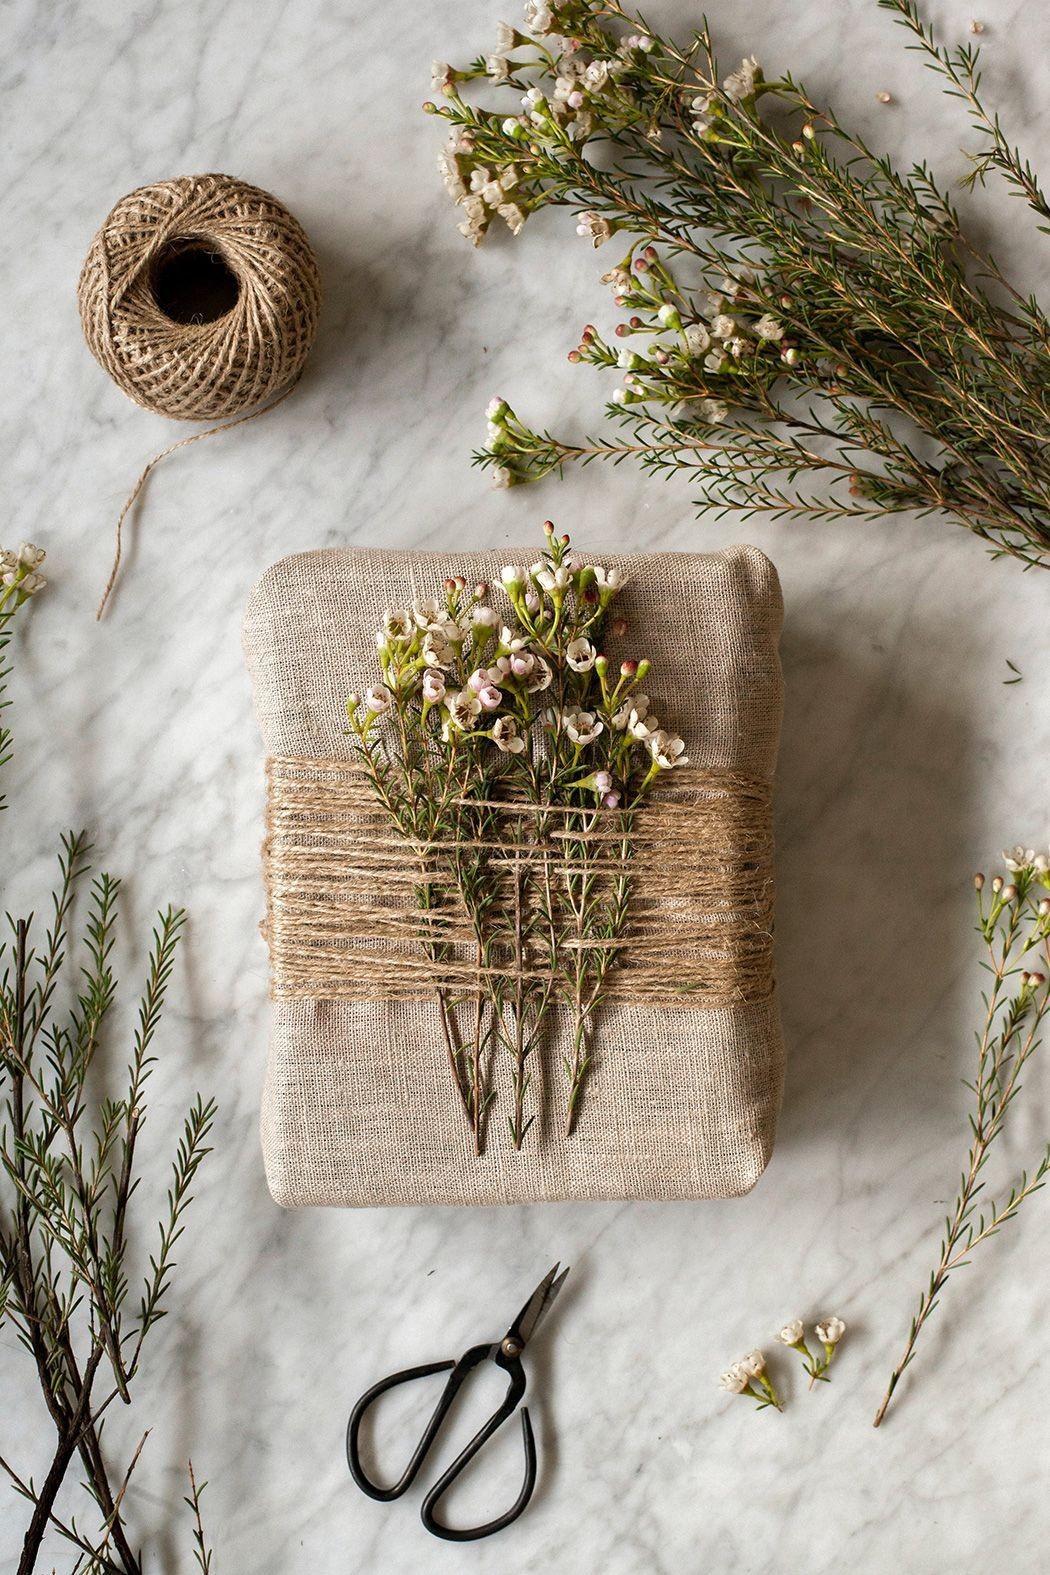 Simple ideas for a warm and vegetal Christmas - Simple ideas for a warm and vegetal Christmas - #Christmas #Giftwrapping #Ideas #Simple #vegetal #warm